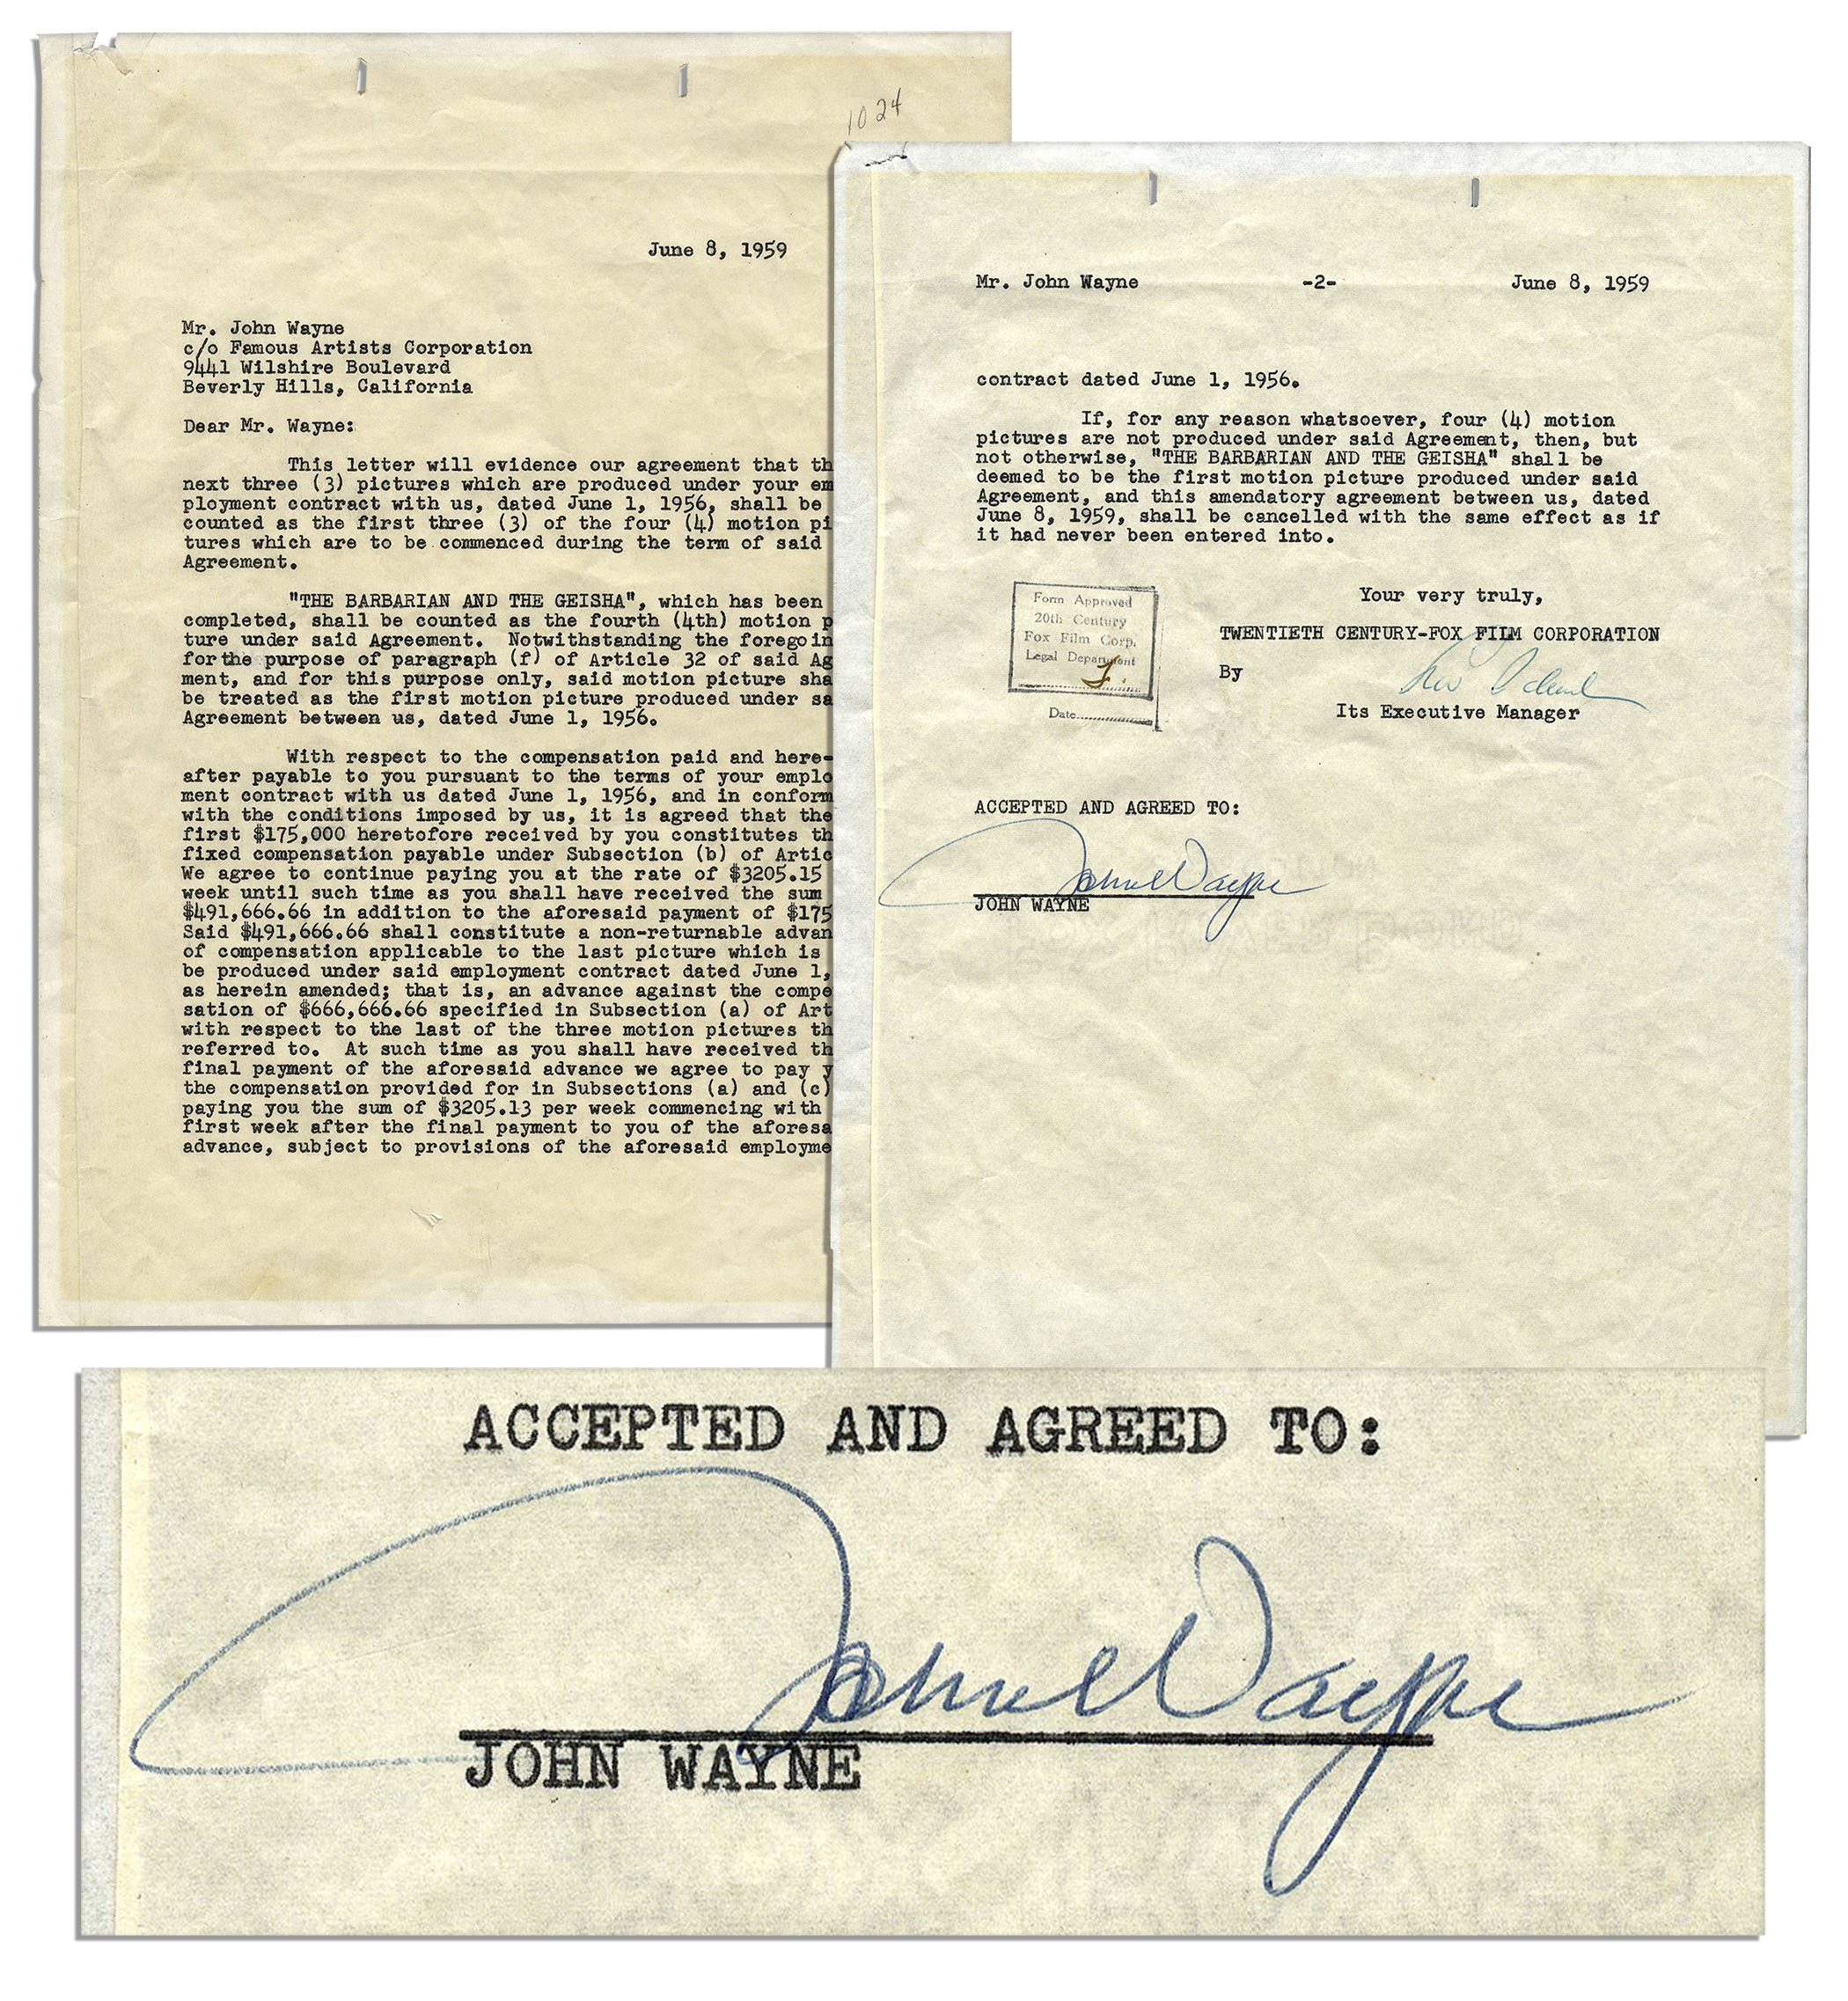 b5d0f92c1 Sell Your John Wayne Autograph at Nate D. Sanders Auctions Today!